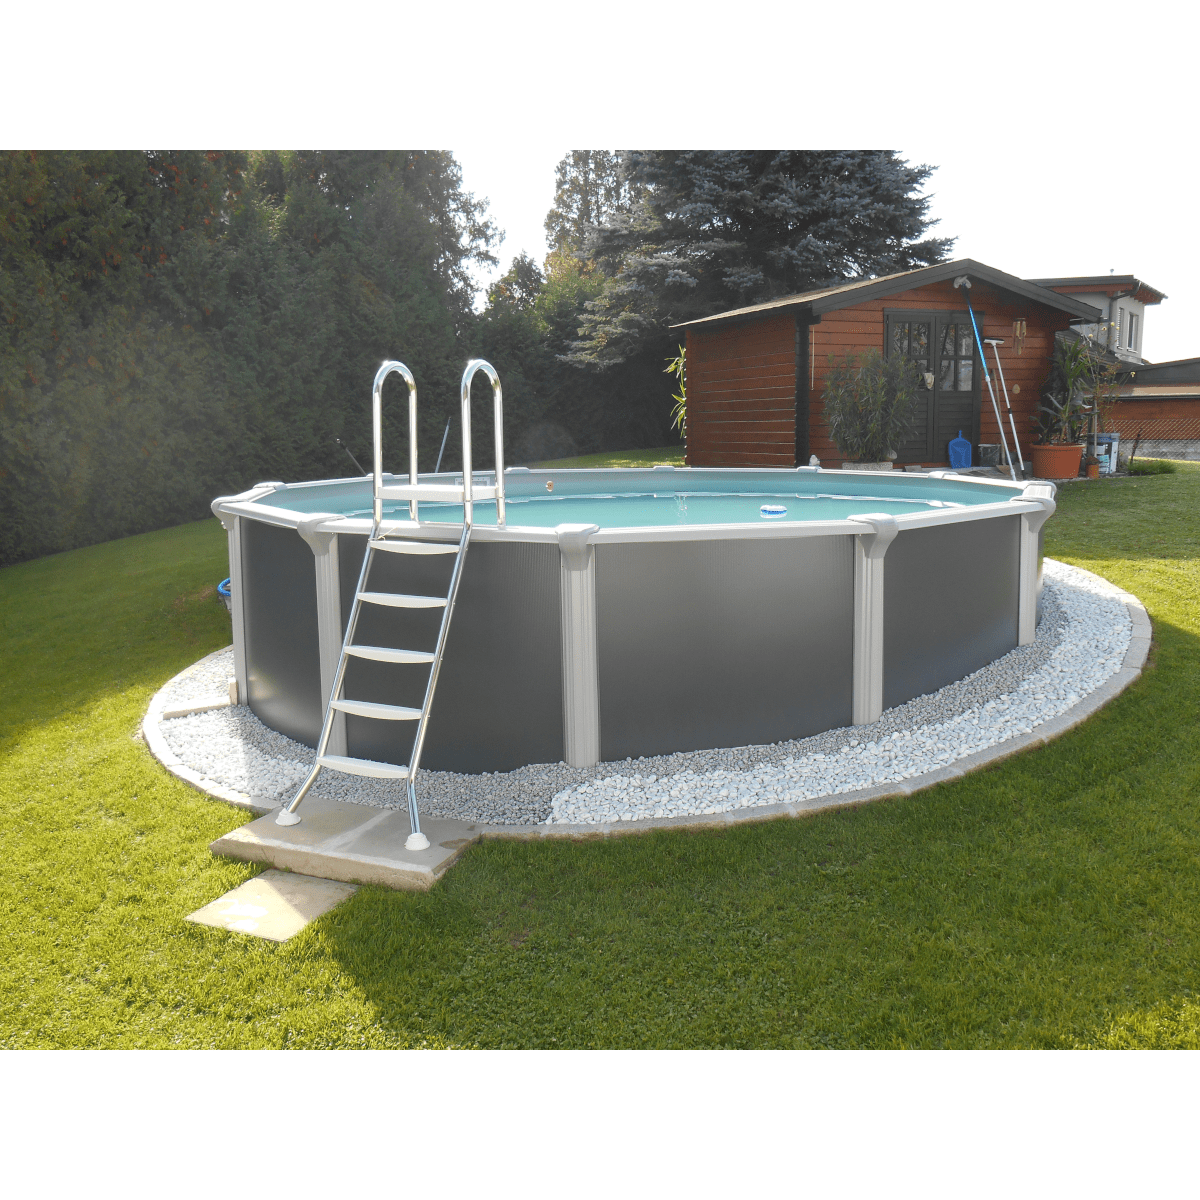 Pool Rund Komplett 3 6 X 1 32m Steirerbecken Pools Supreme Design Rund